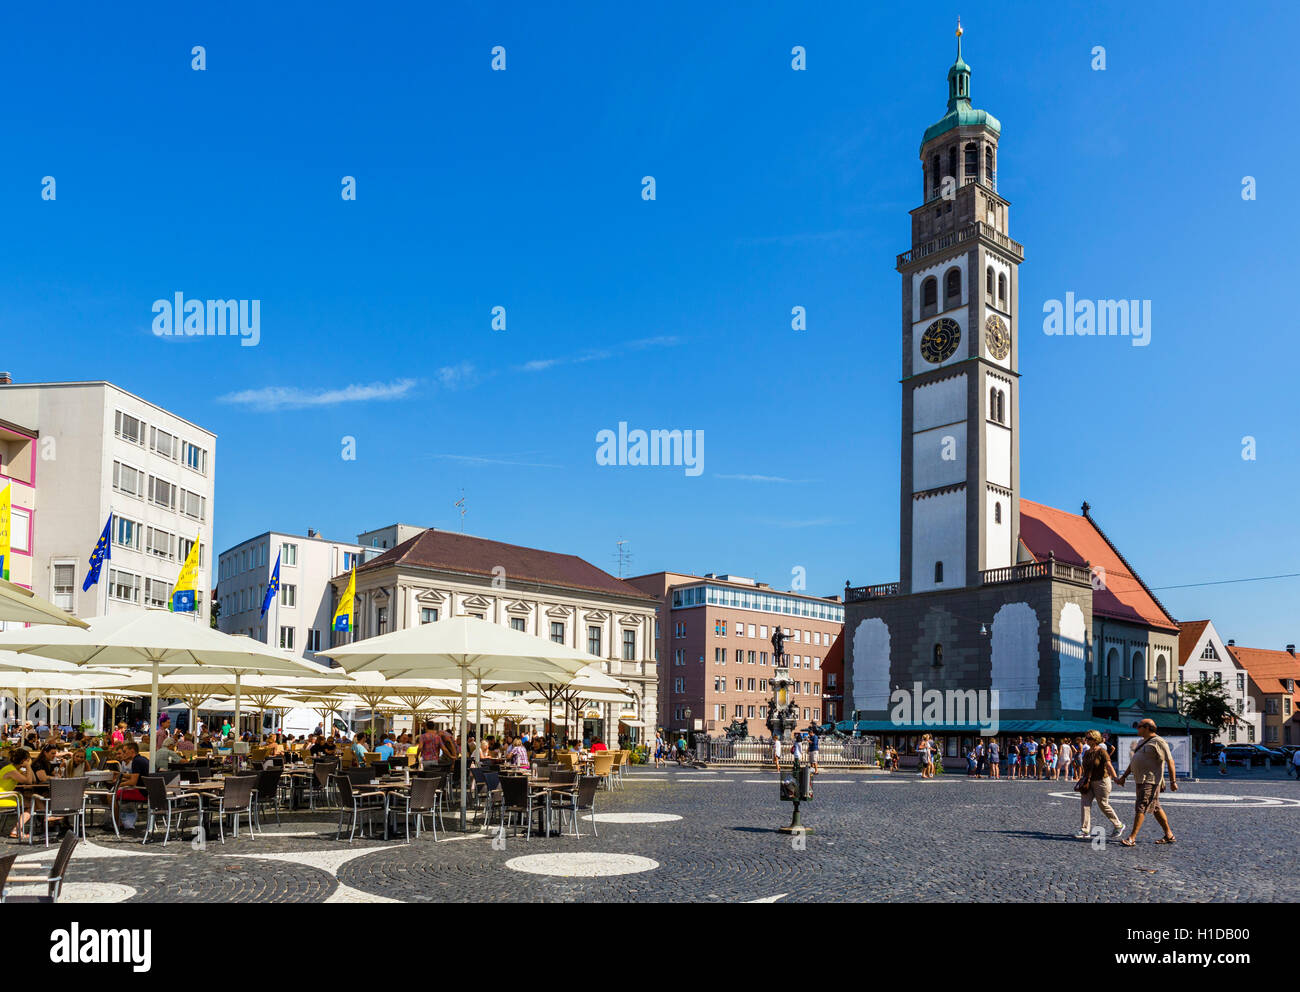 Cafe in Rathausplatz looking towards the Perlachturm (Perlach Tower) and church of St Peter, Augsburg, Bavaria, - Stock Image